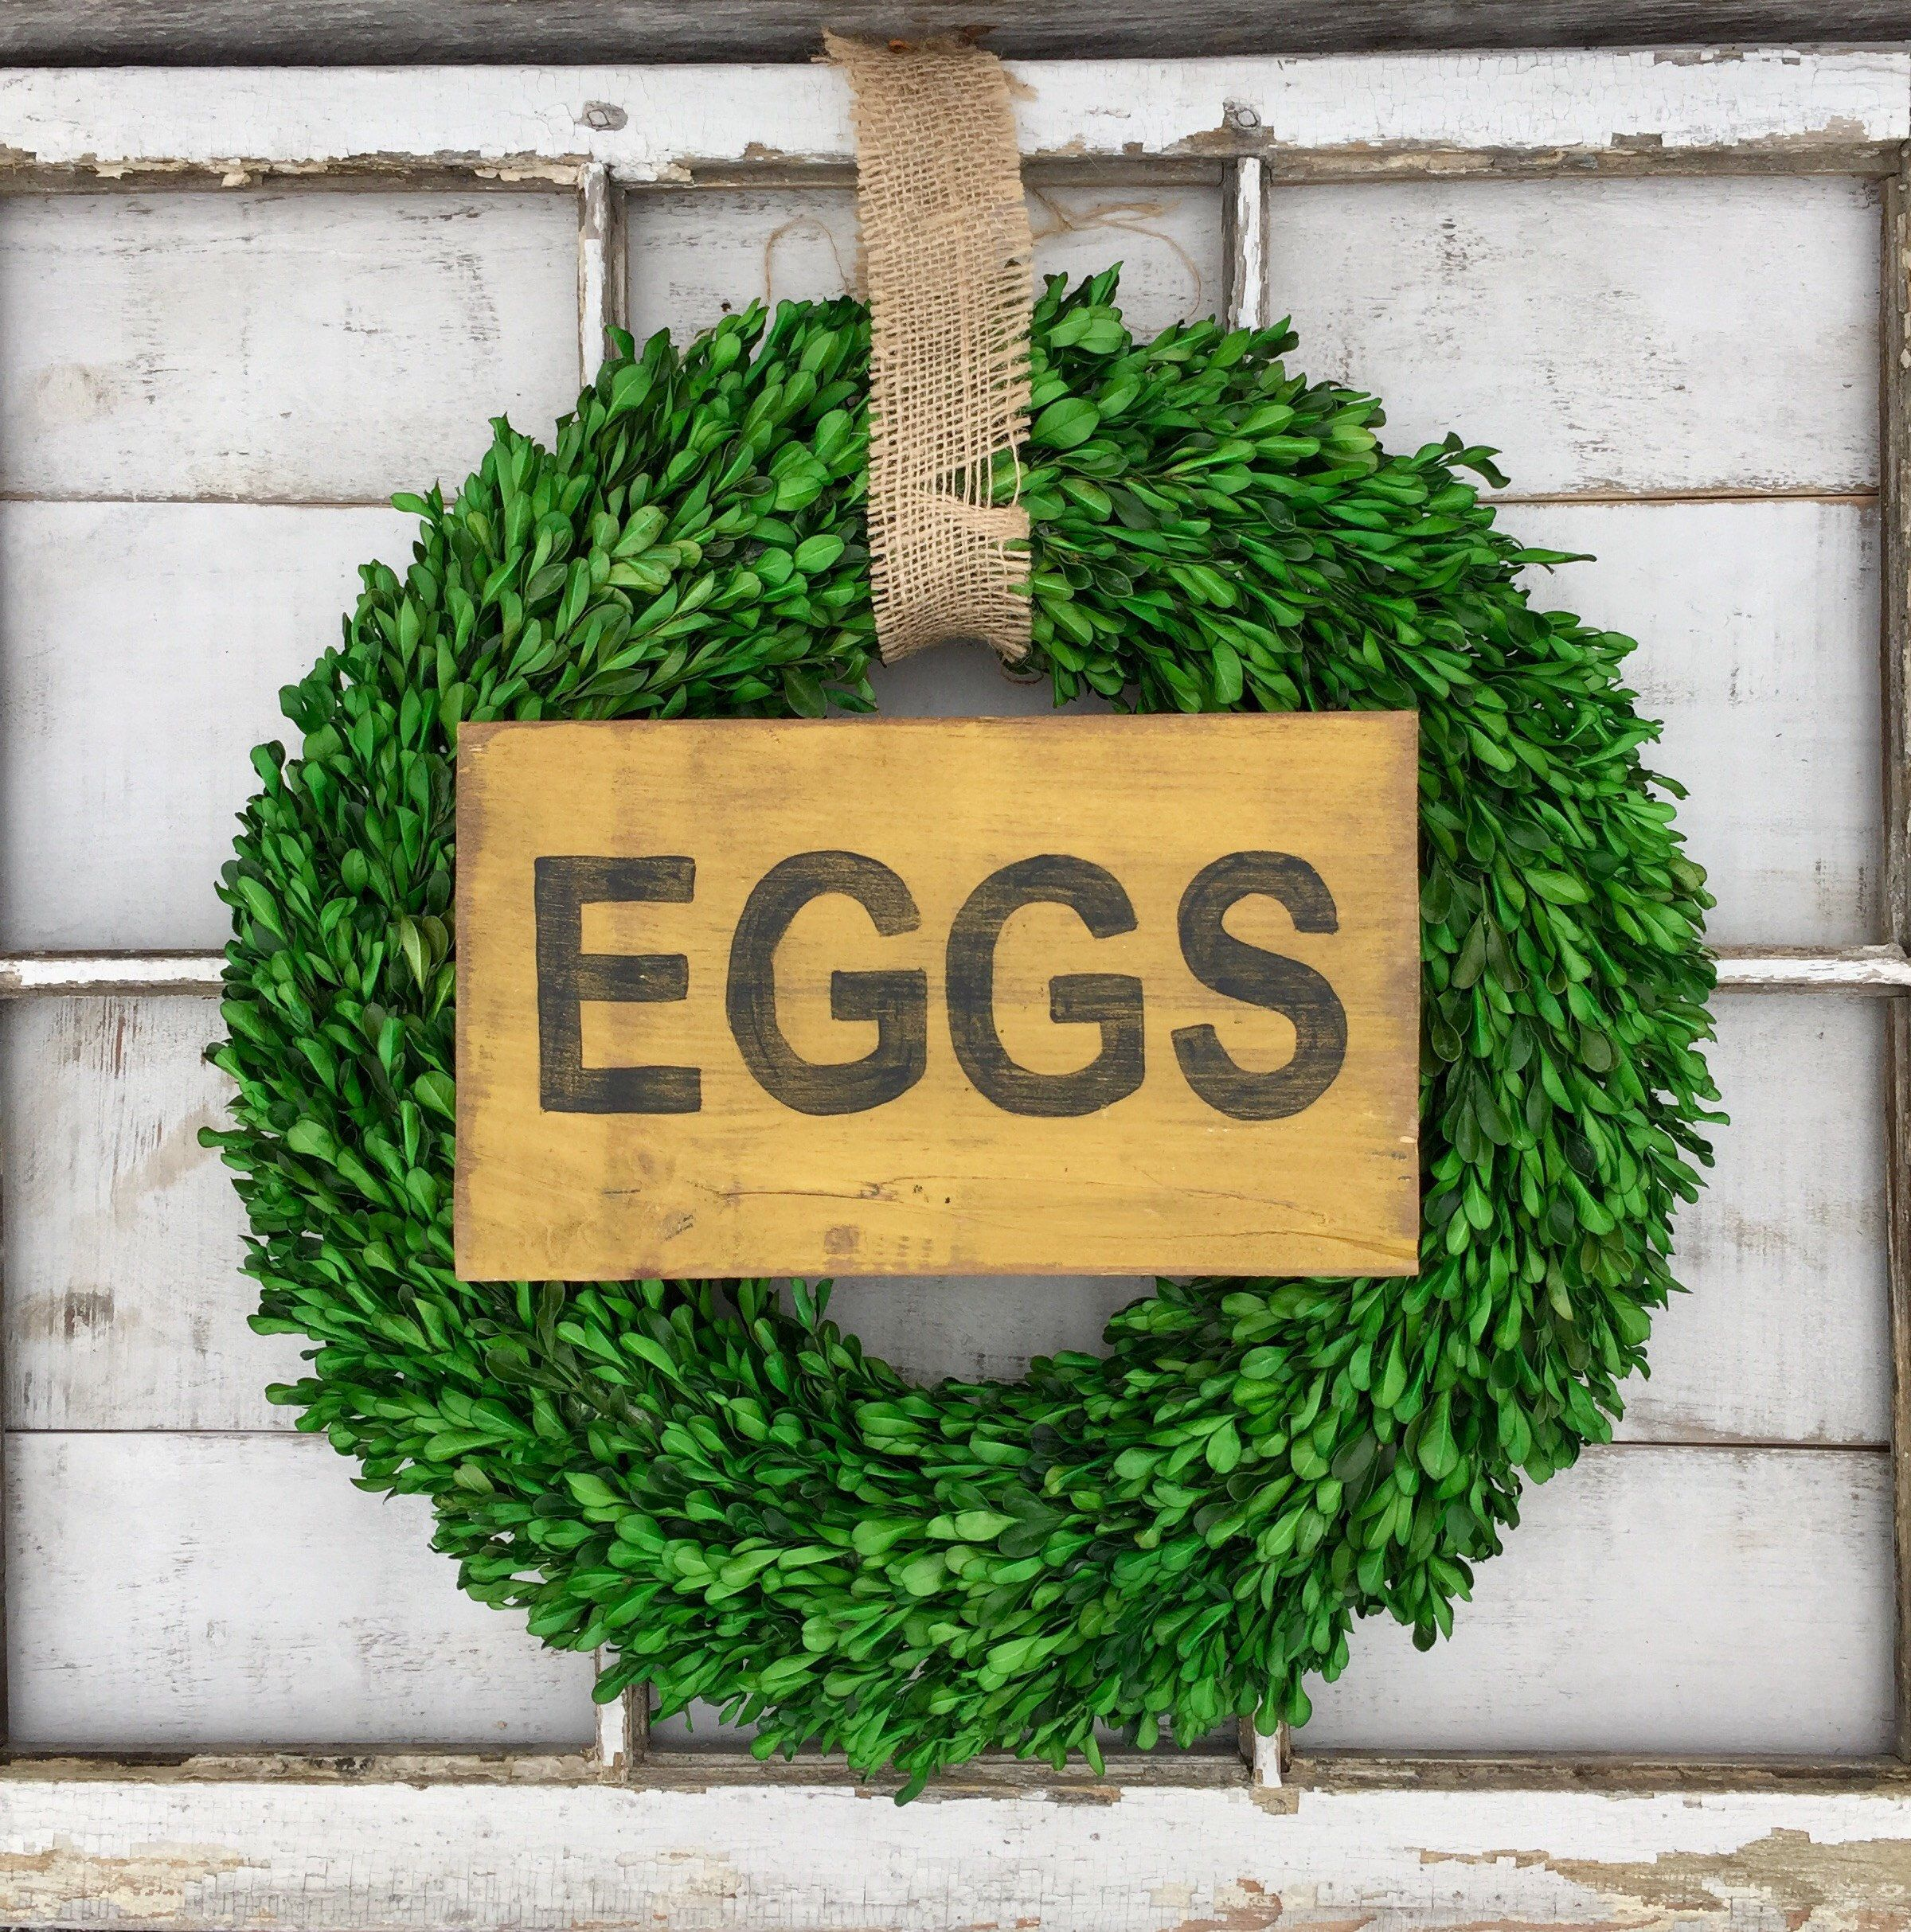 Country Decor Wood Signs Best Egg Sign Kitchen Decor Wood Sign Signs Eggs Farmhouse Style Review